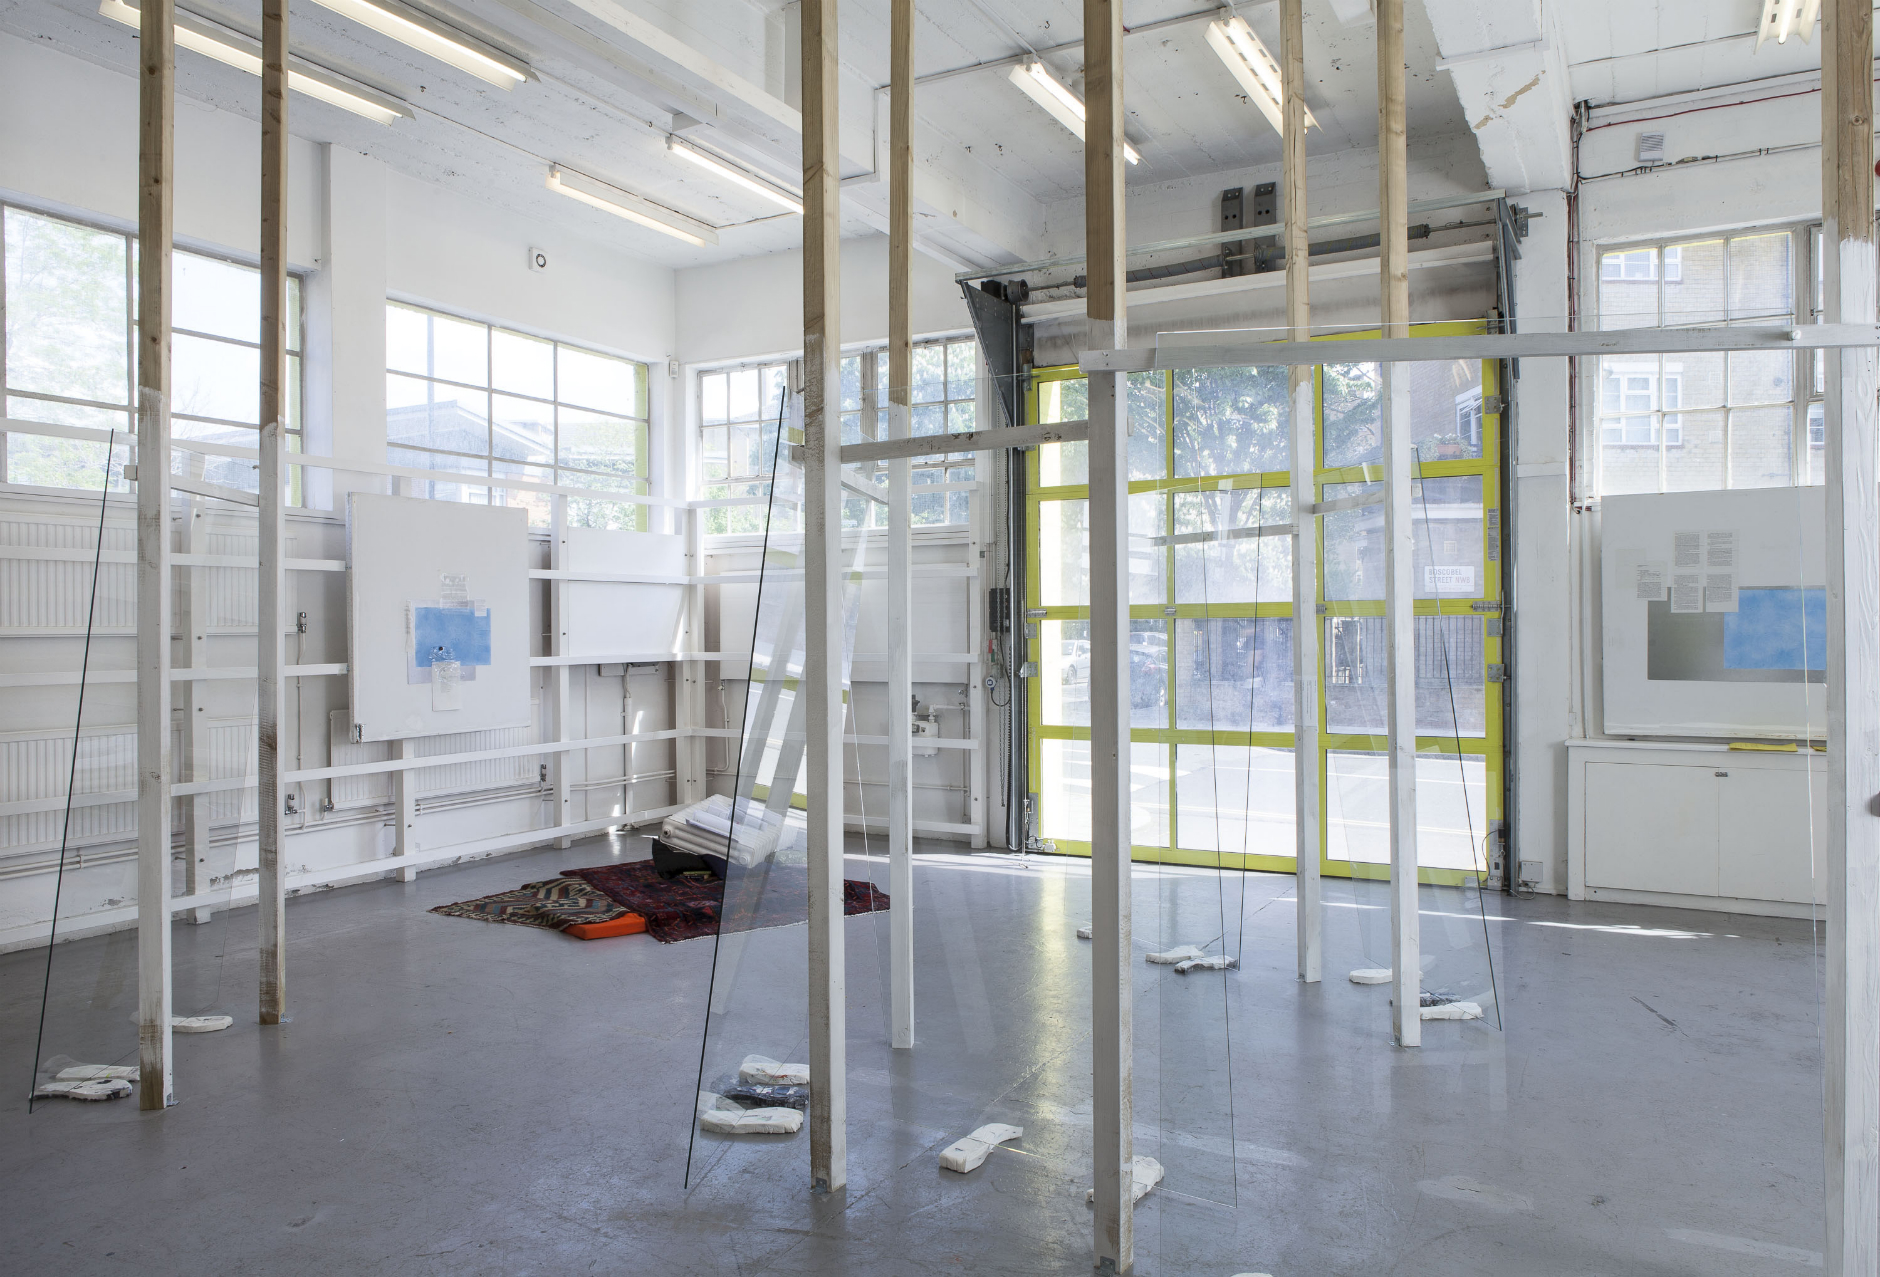 Commissioned by The Showroom for How to work together: a shared project with Chisenhale Gallery and Studio Voltaire. Photo Daniel Brooke. Courtesy the artist and The Showroom, London